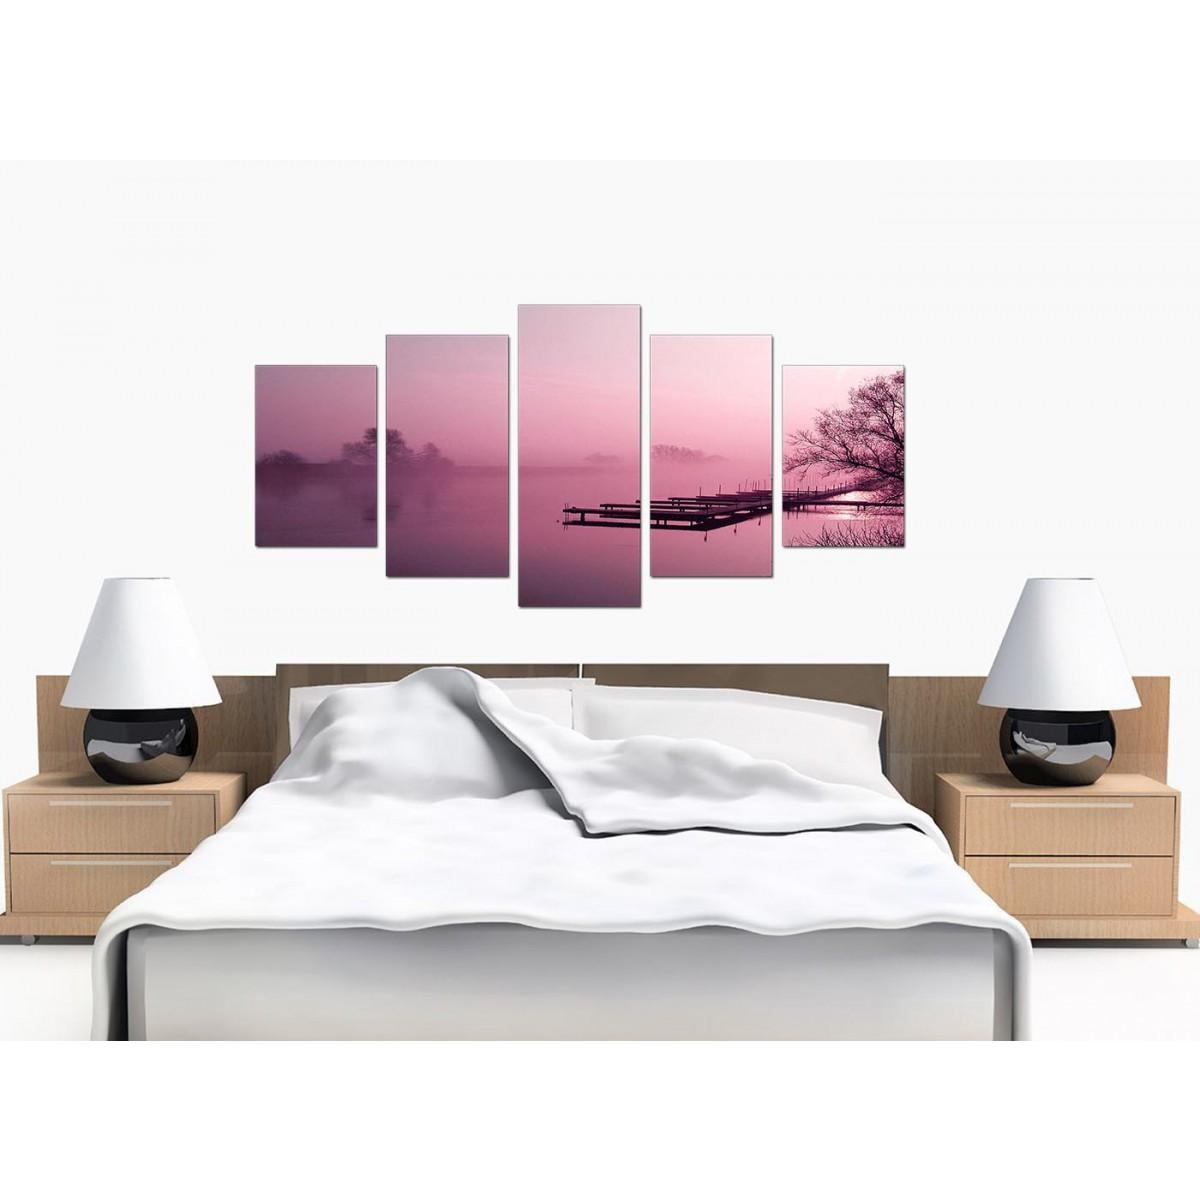 Extra Large River Landscape Canvas Wall Art 5 Panel In Plum Throughout Plum Coloured Wall Art (Image 9 of 20)